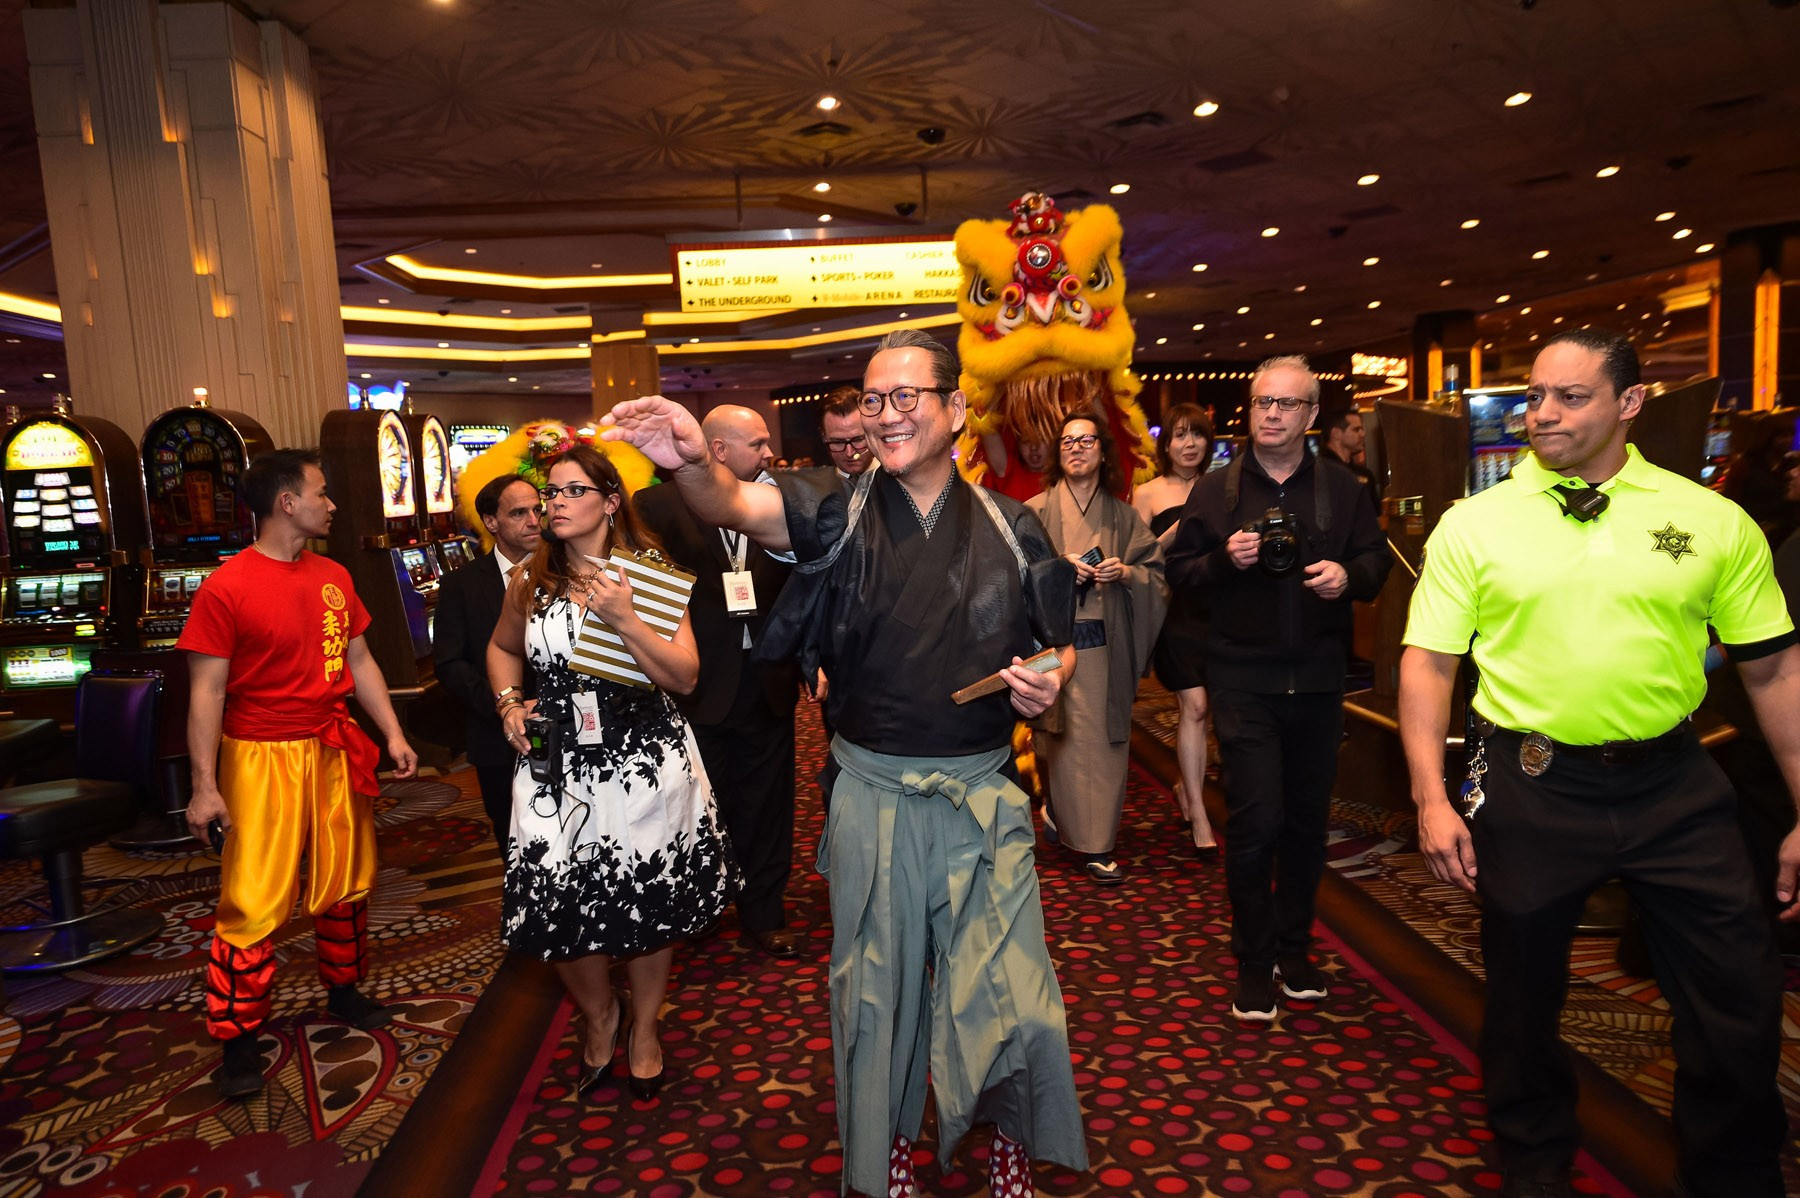 chef-masaharu-morimoto-leading-parade-of-lion-dancers-through-mgm-grand